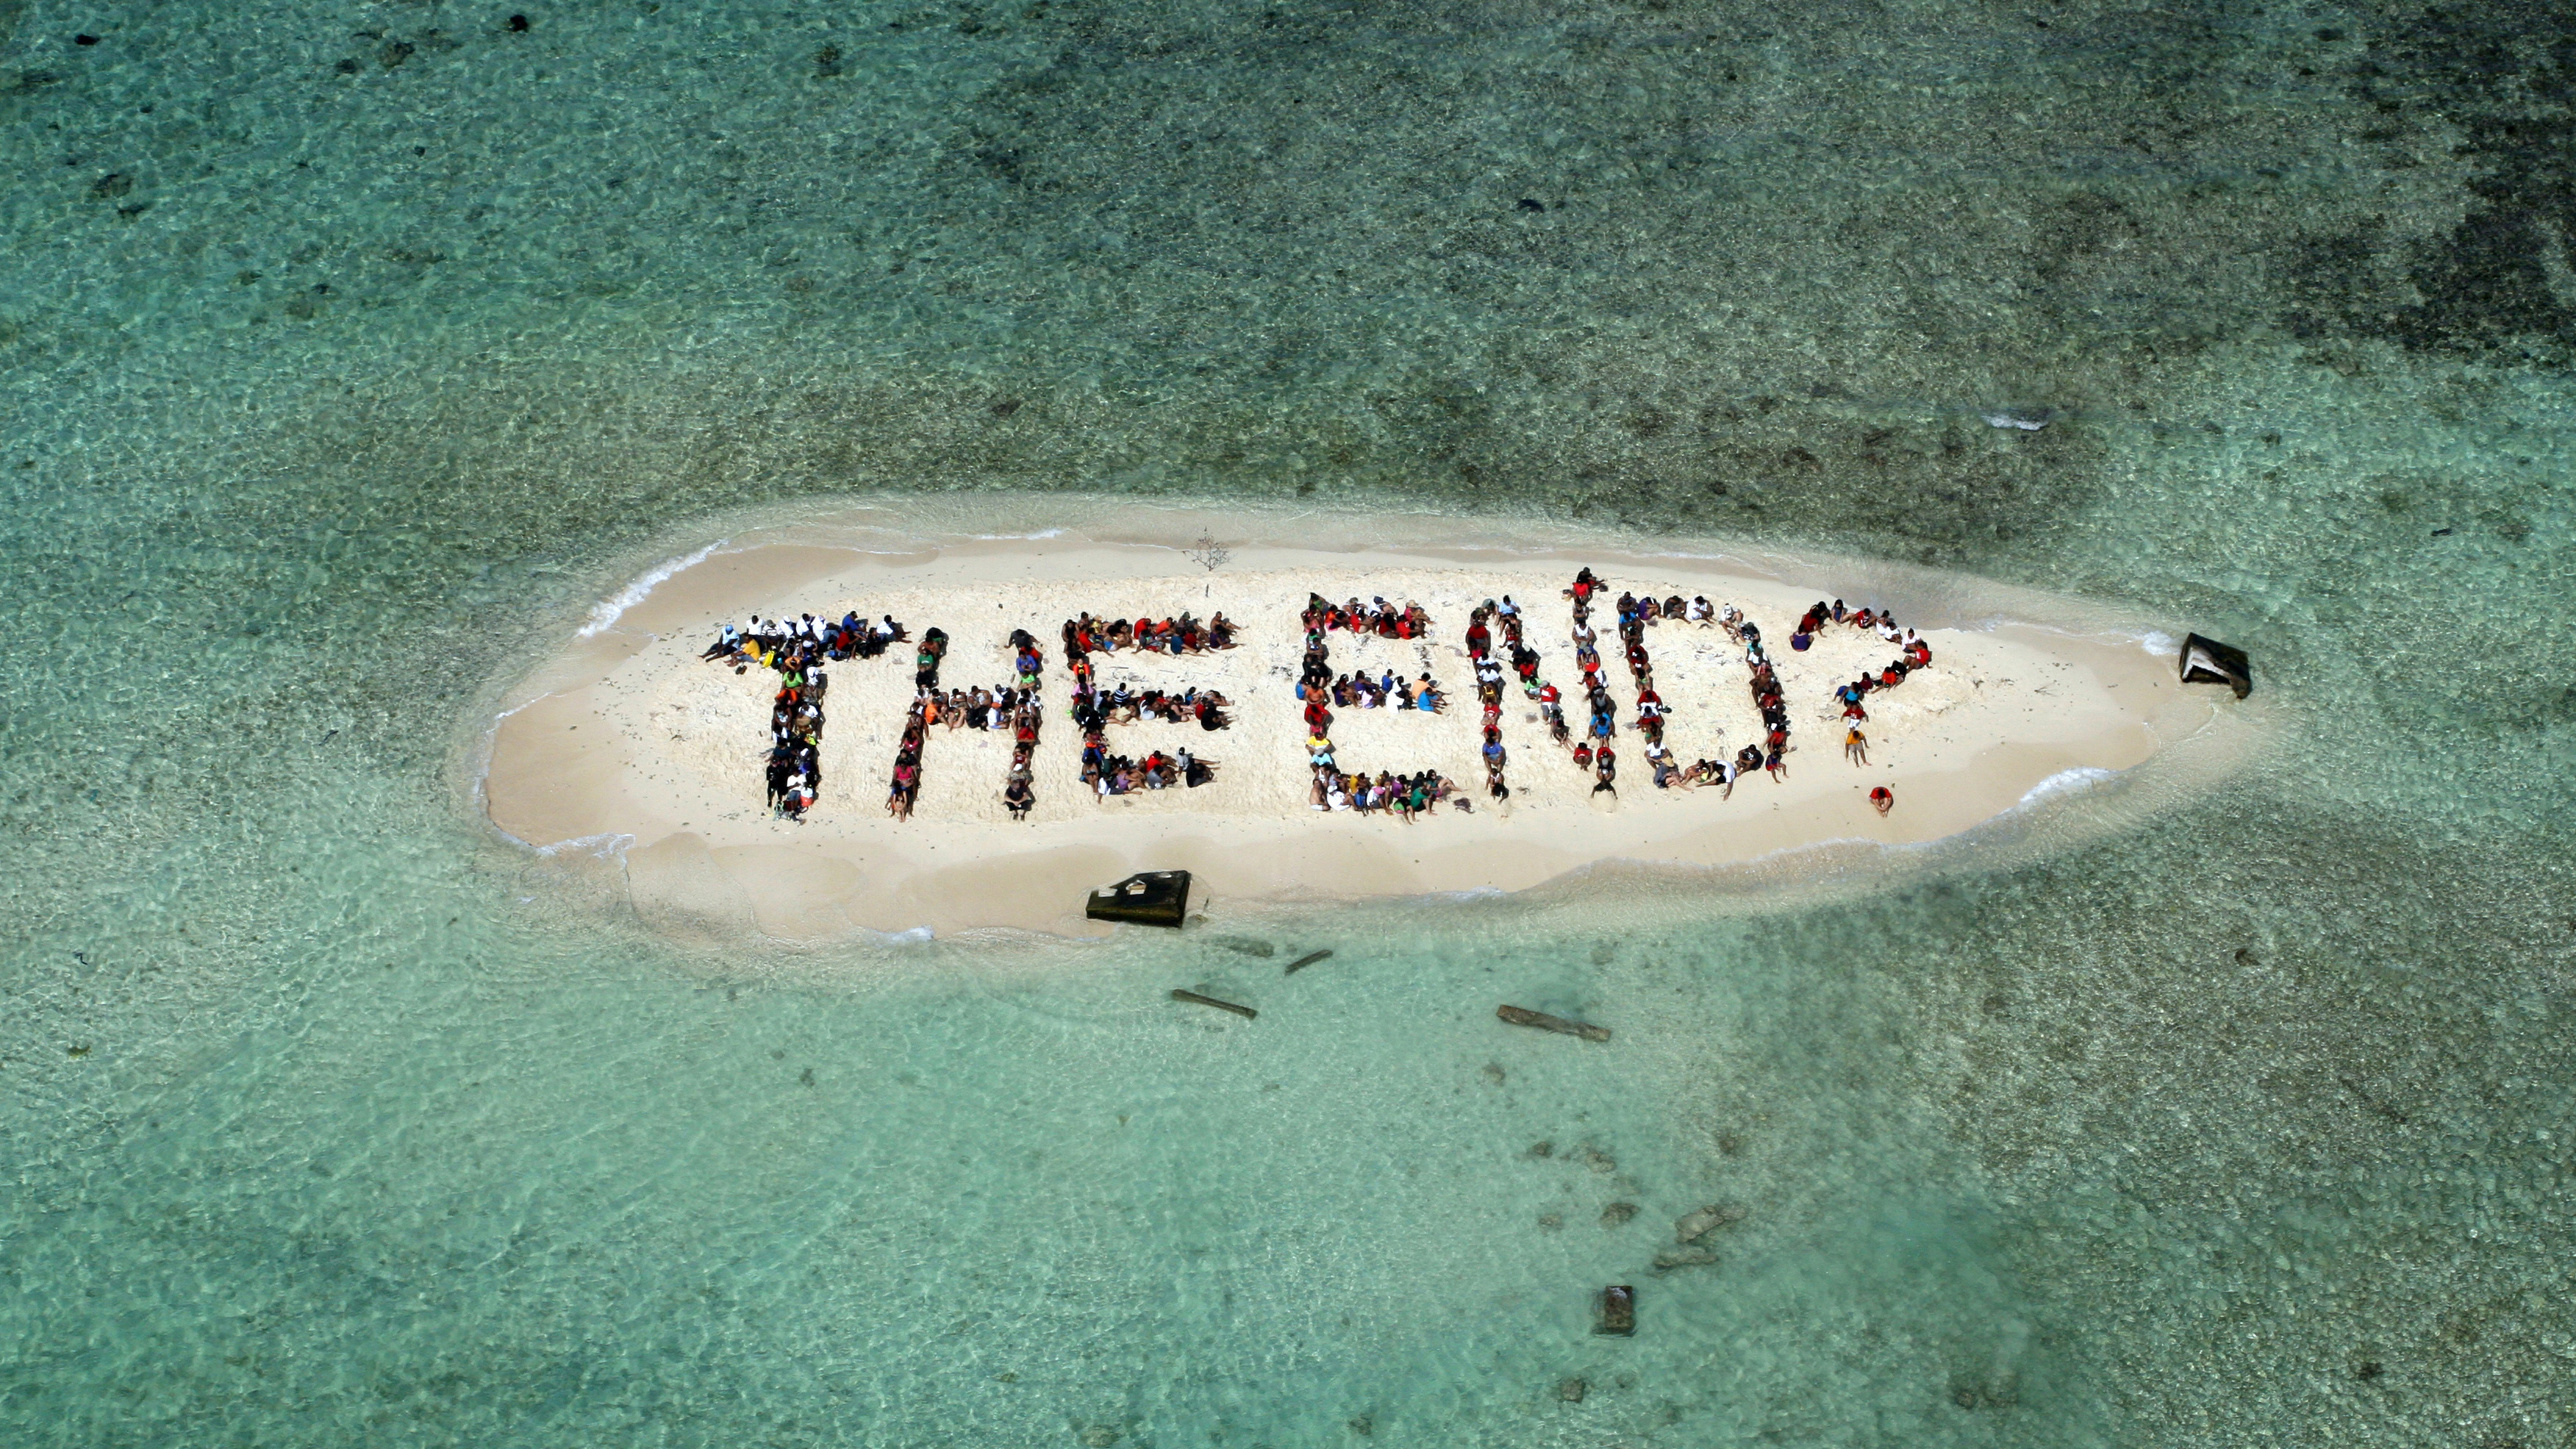 """Hundreds of Belizians and international supporters gather on an island to form a message on the Barrier Reef off the coast of Belize City November 13, 2010. The message, which was to call on humanity to be in harmony with the natural world, was created on the final day of the three-day Belize Reef Summit and is part of the launch of the Harmony Initiative, a partnership between the film """"Harmony"""" narrated by Britain's Prince Charles and the Global Campaign for Climate Action. REUTERS/Lou Dematteis/Spectral Q/Handout"""